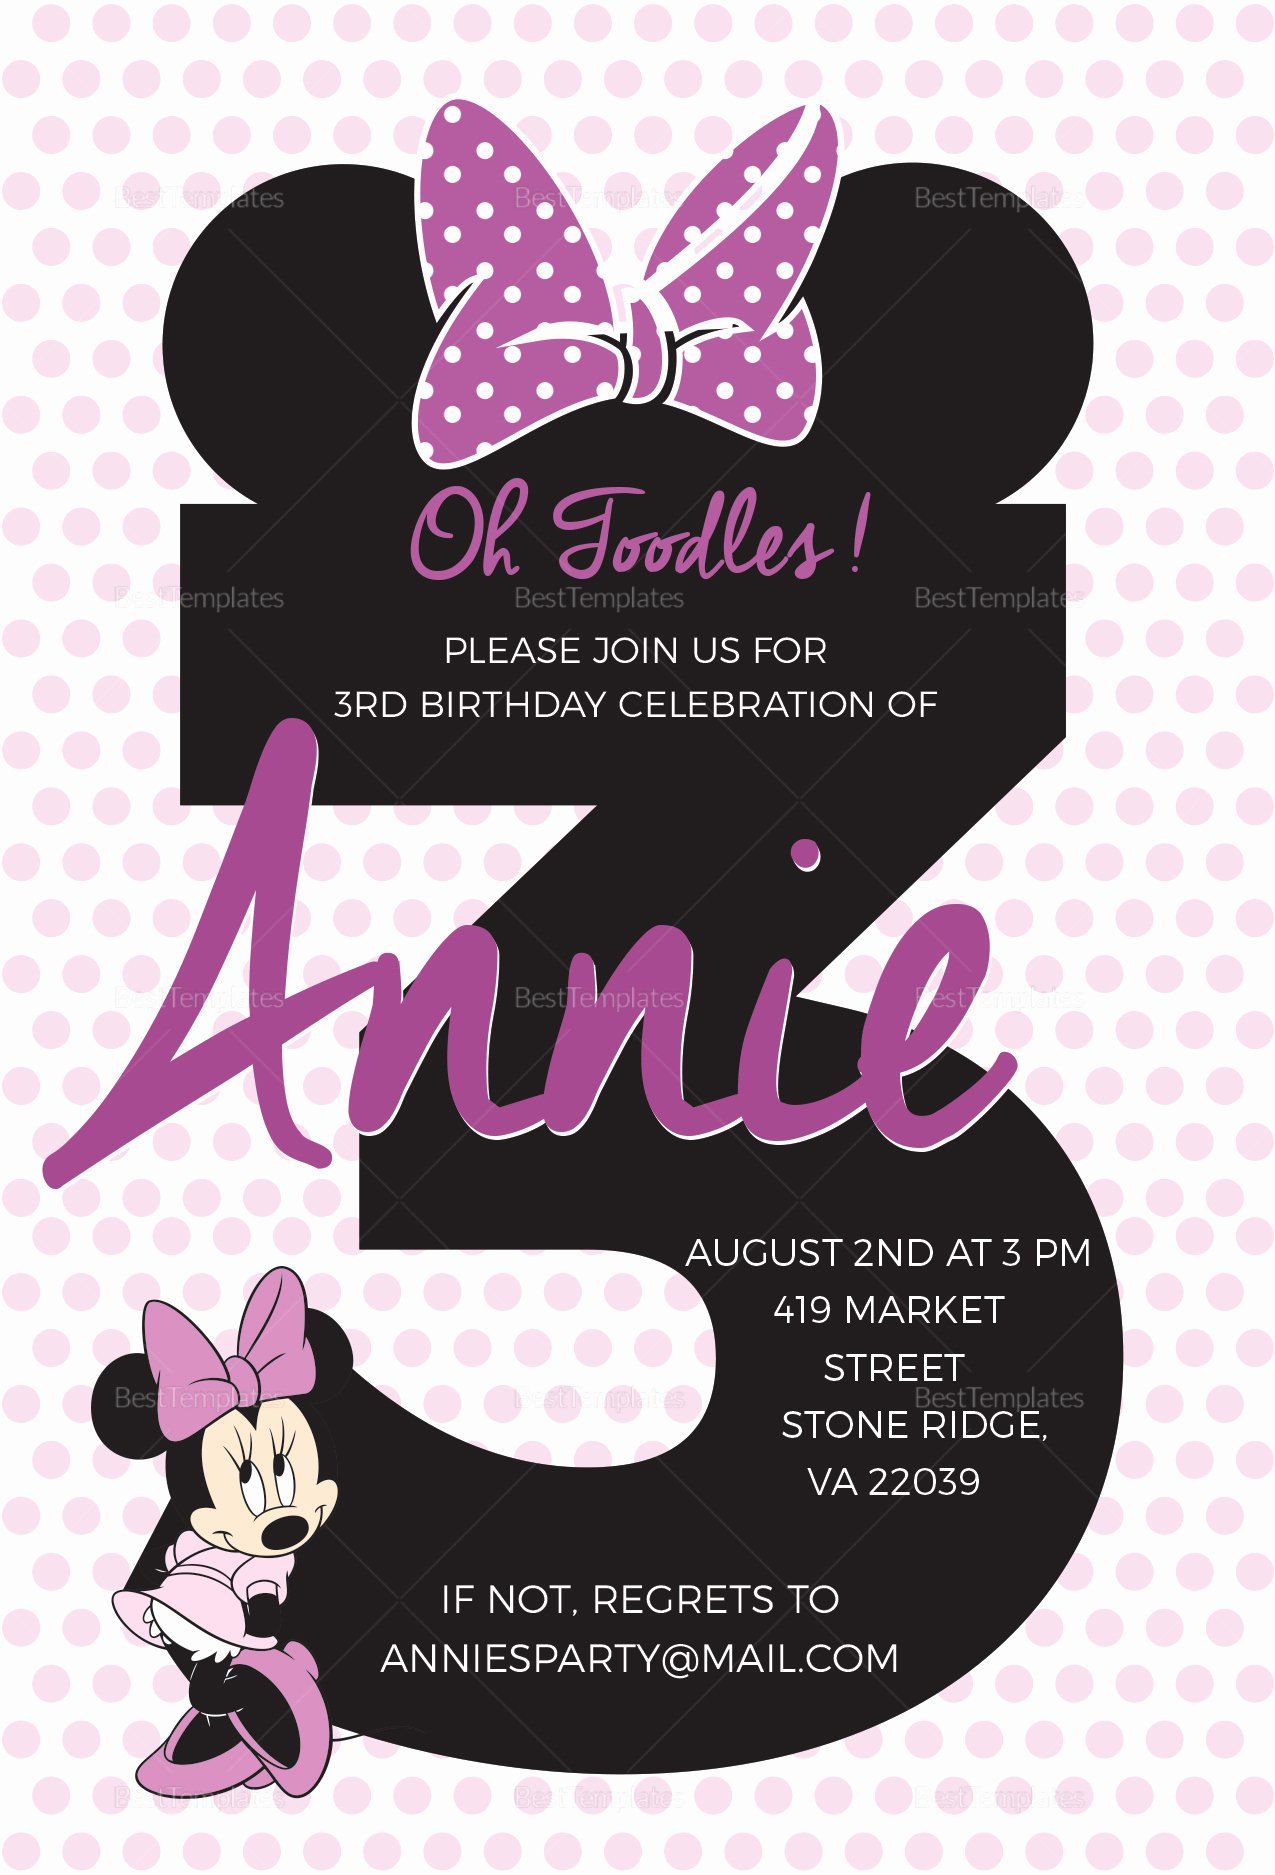 Minnie Mouse Birthday Invitation Template Harlem Printable Invitations Minnie Mouse Birthday Invitations Mickey Mouse Birthday Invitations Minnie Mouse Invitations